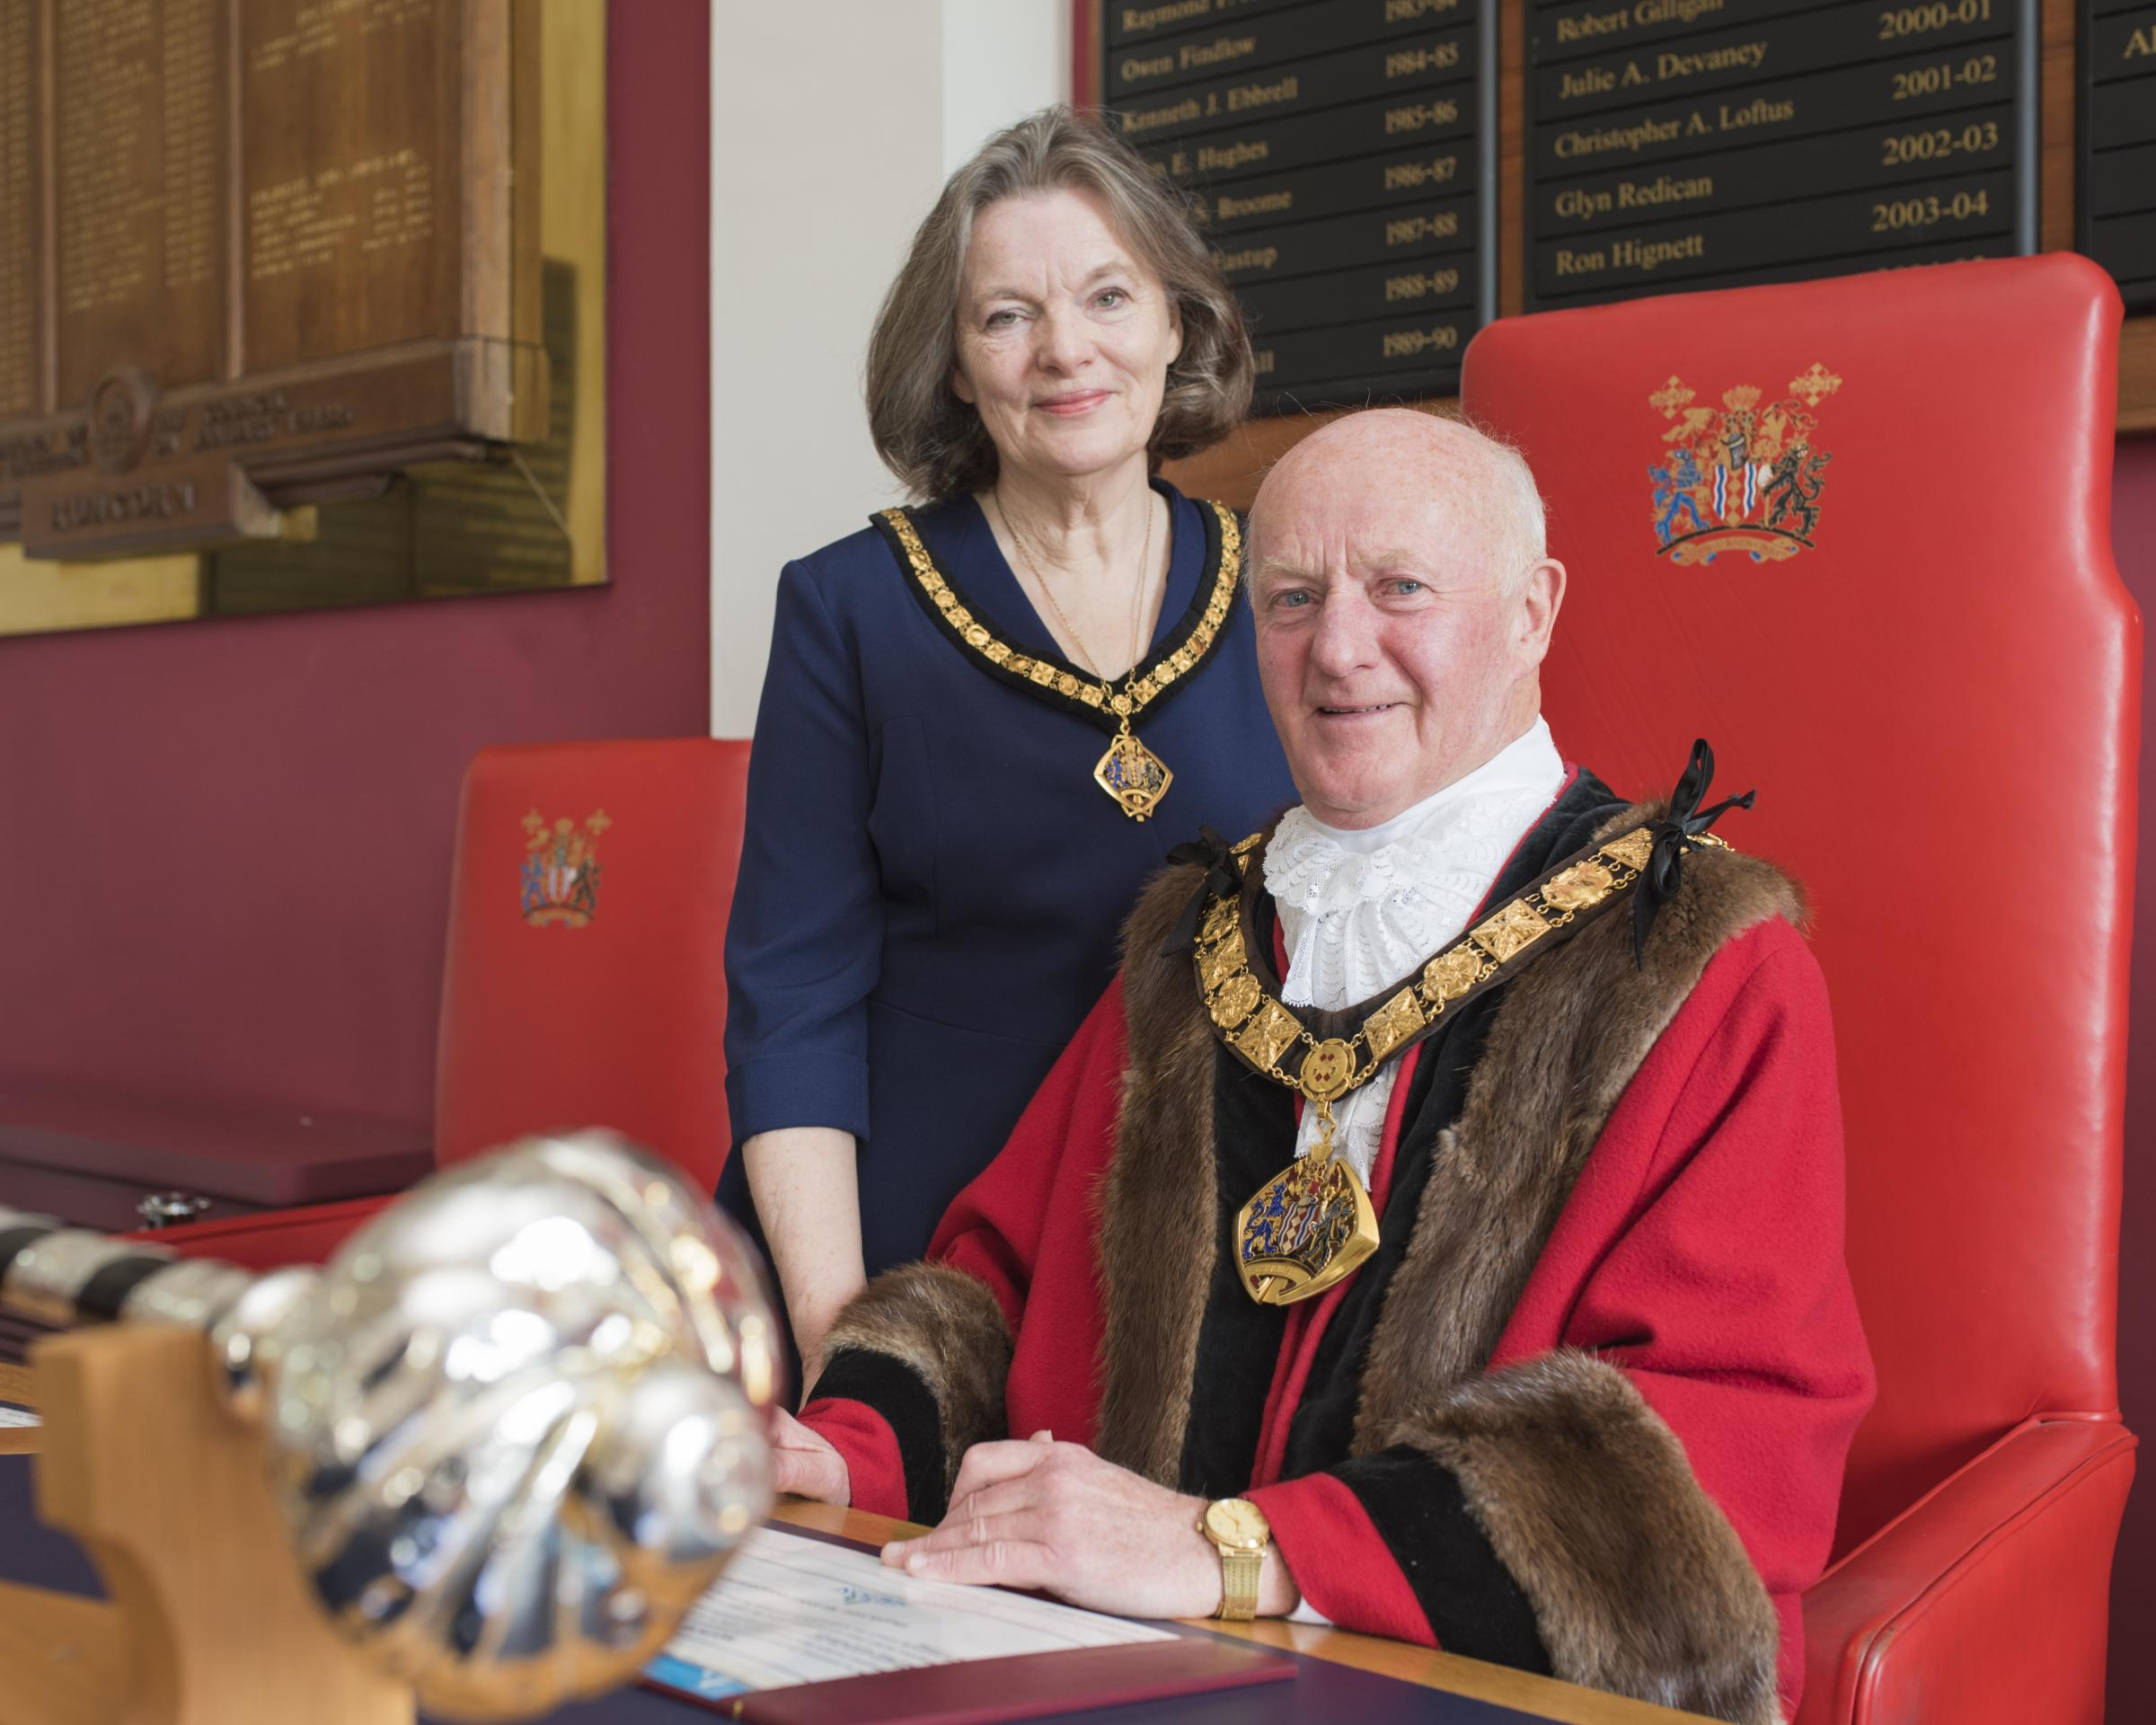 The new mayor and mayoress of Halton Cllrs John and Marjorie Bradshaw